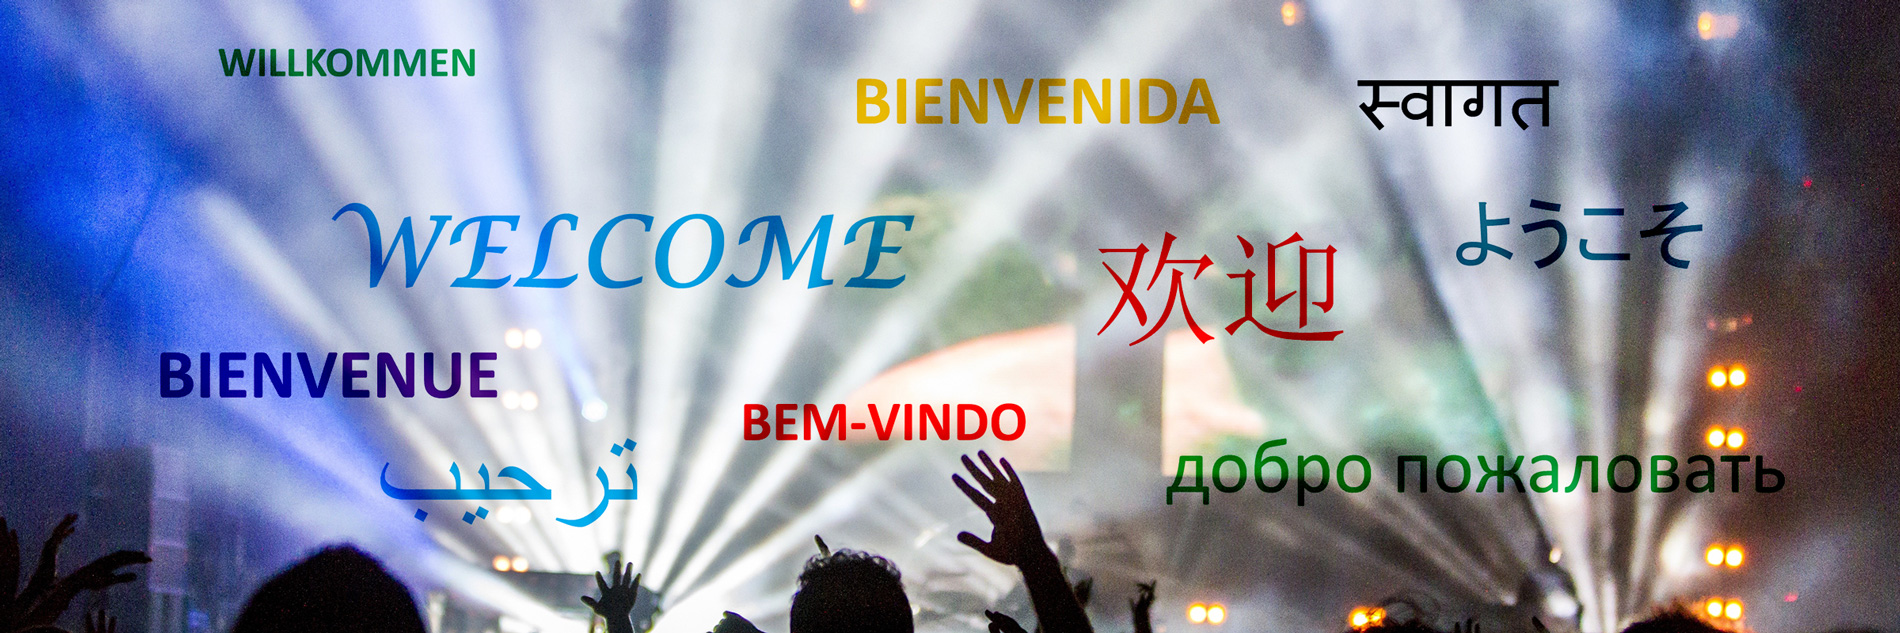 Our website is now available in 6 more languages